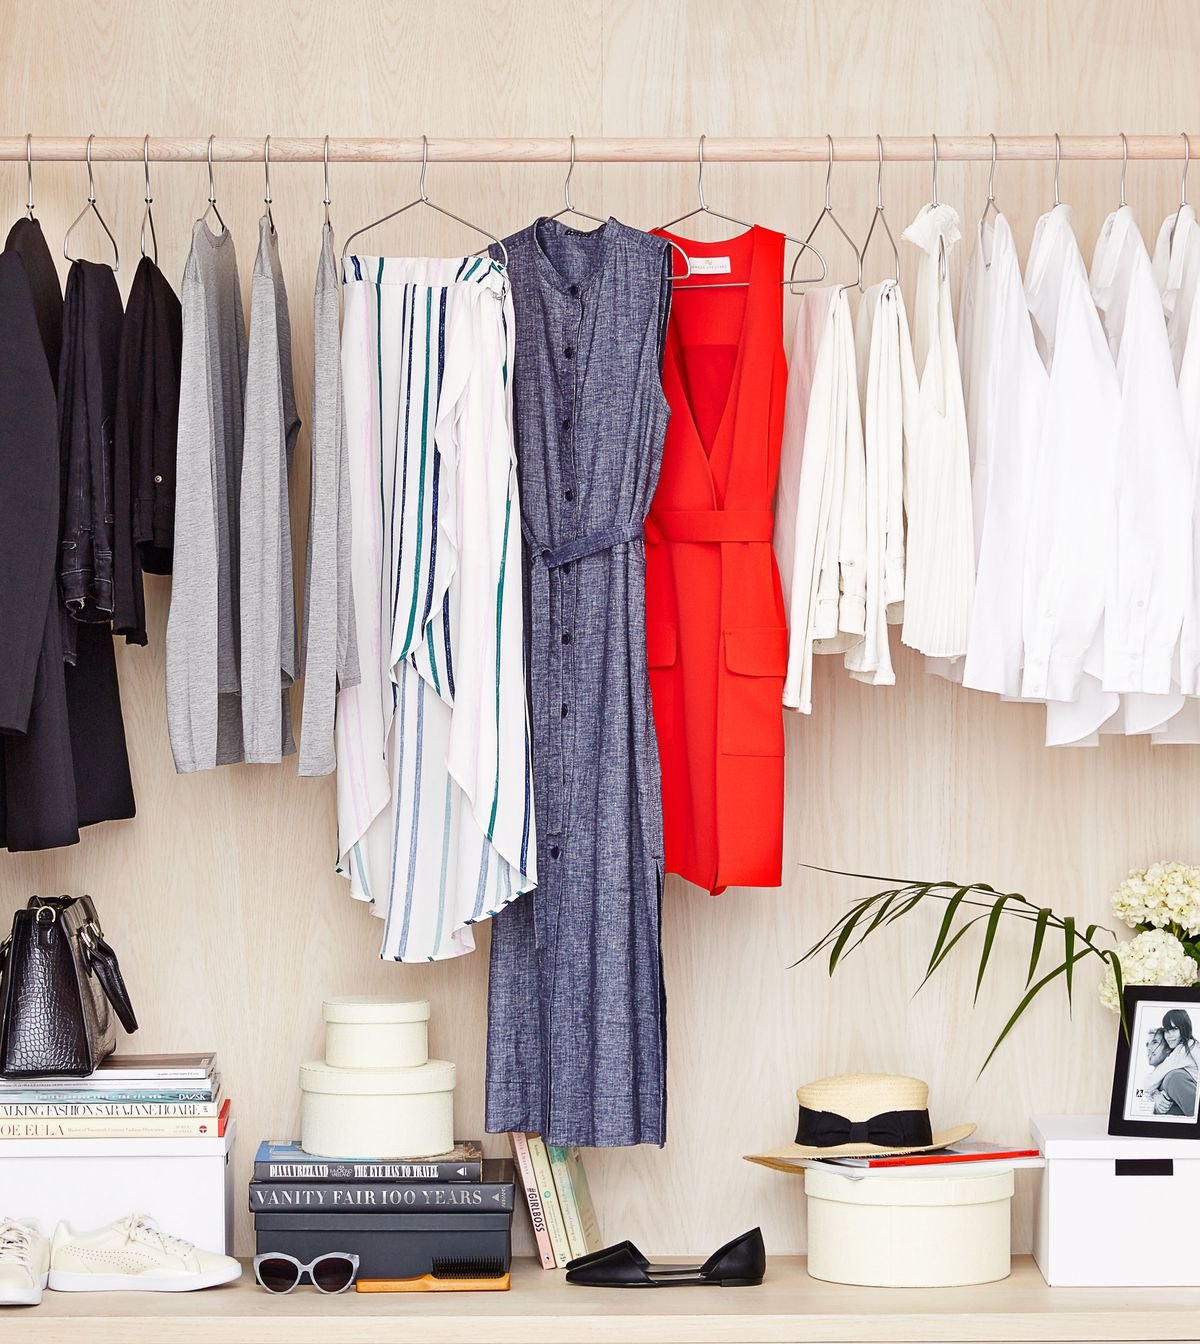 A closet with clothes hanging from the hanger bar